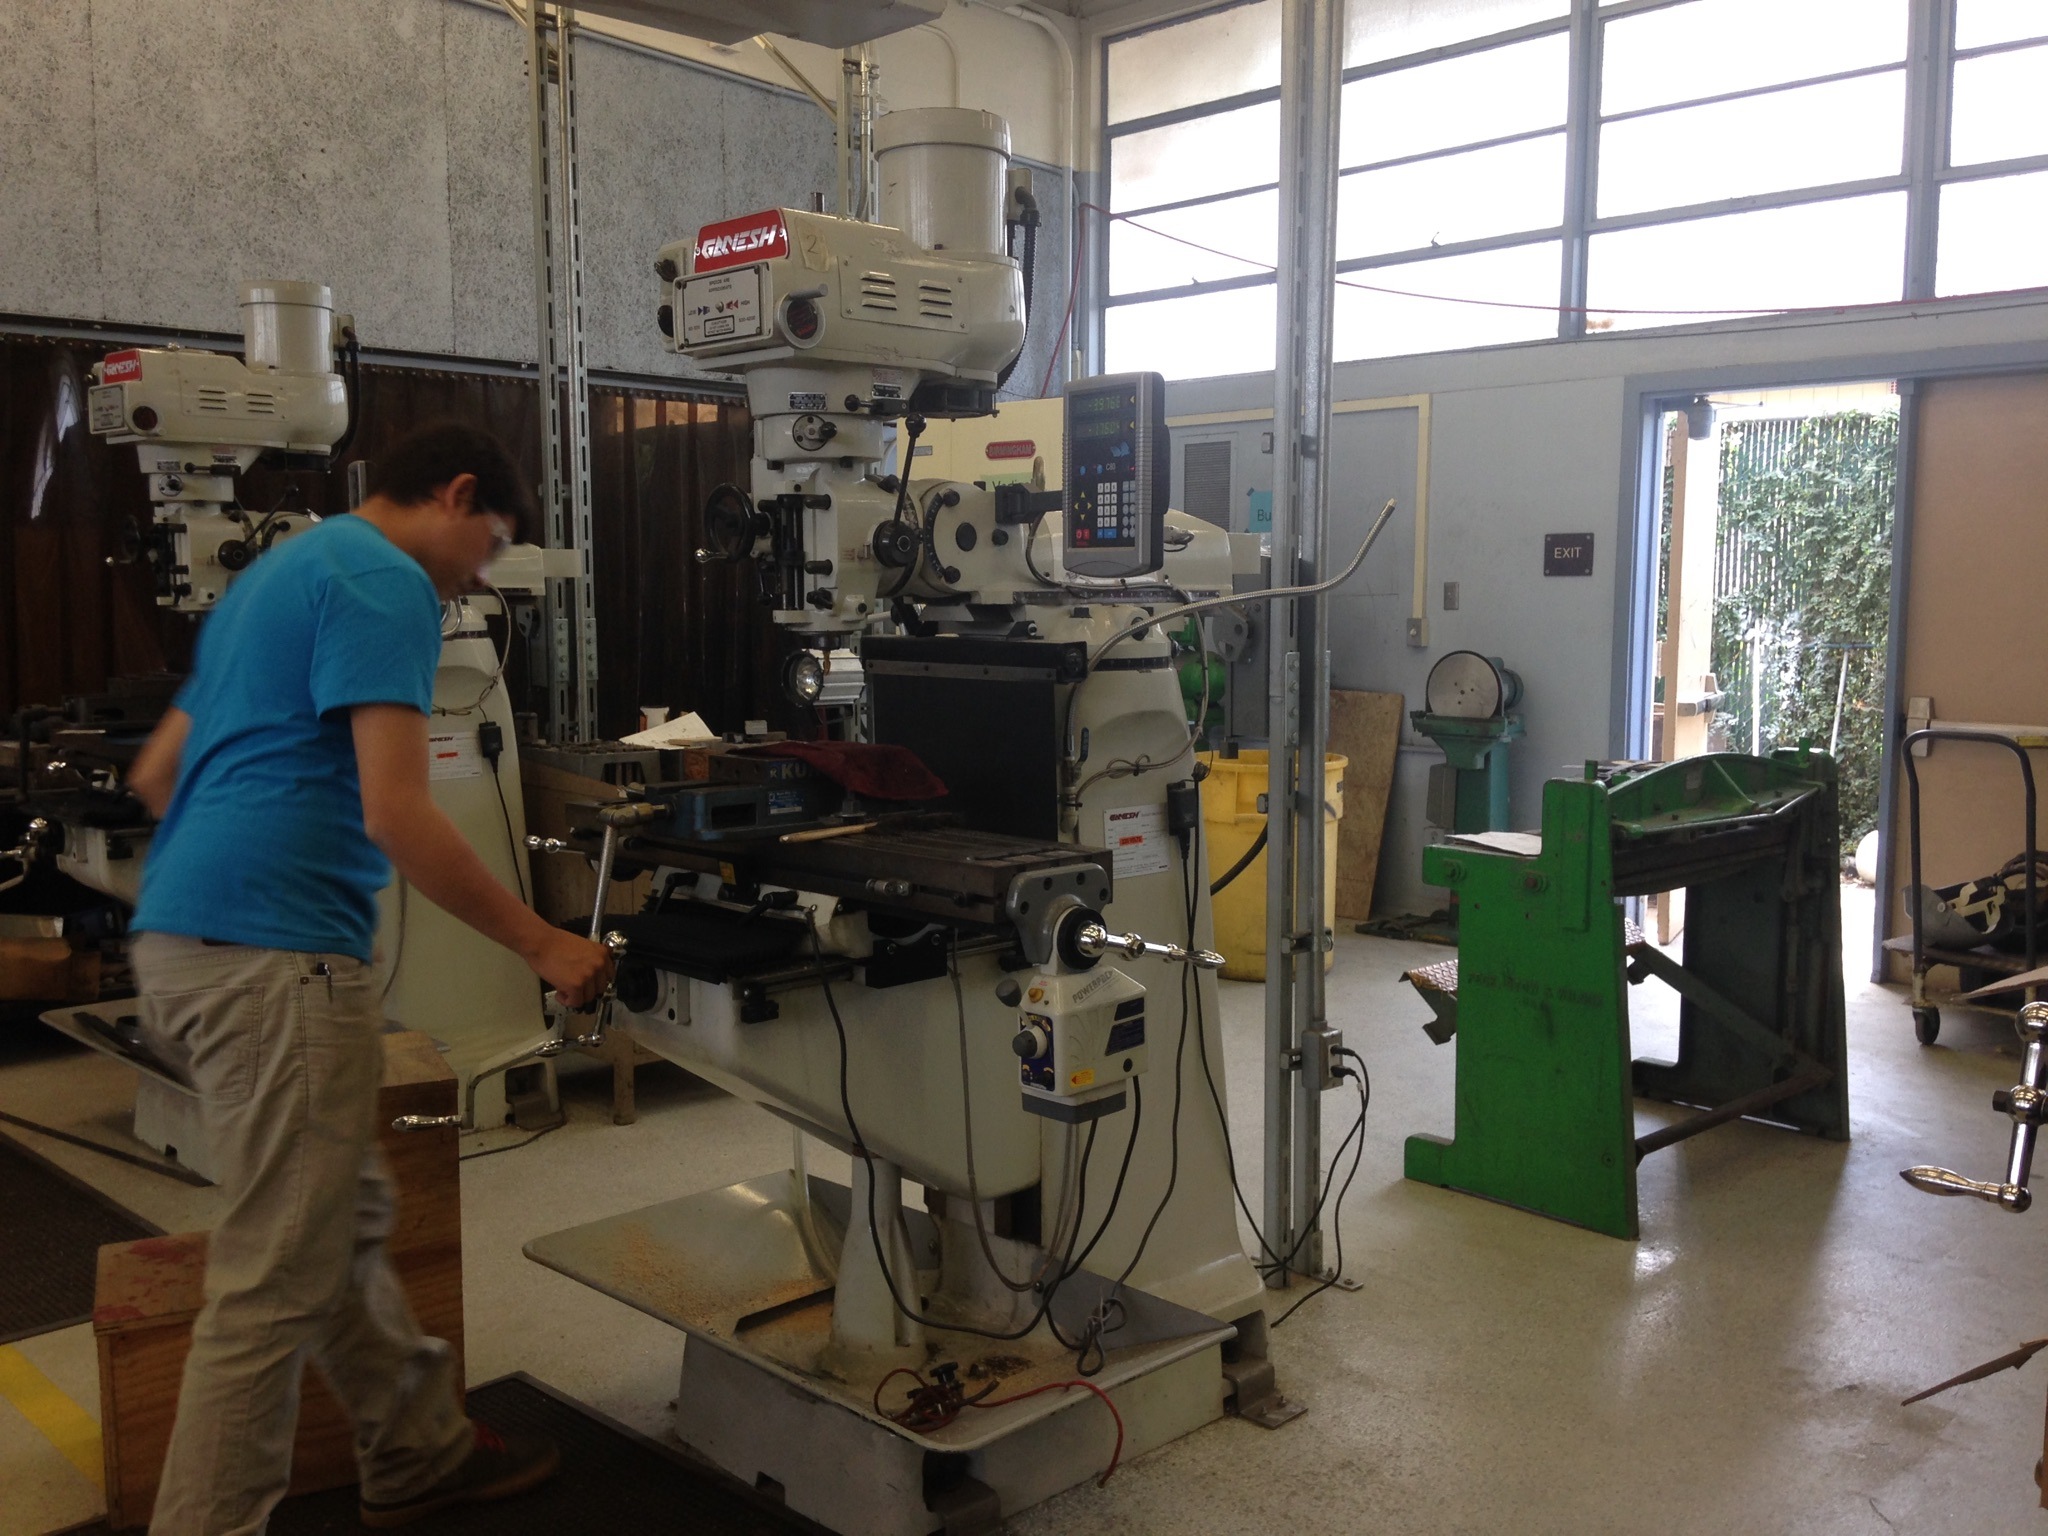 A student at work in the machine class. Photo by Frances Anderton.